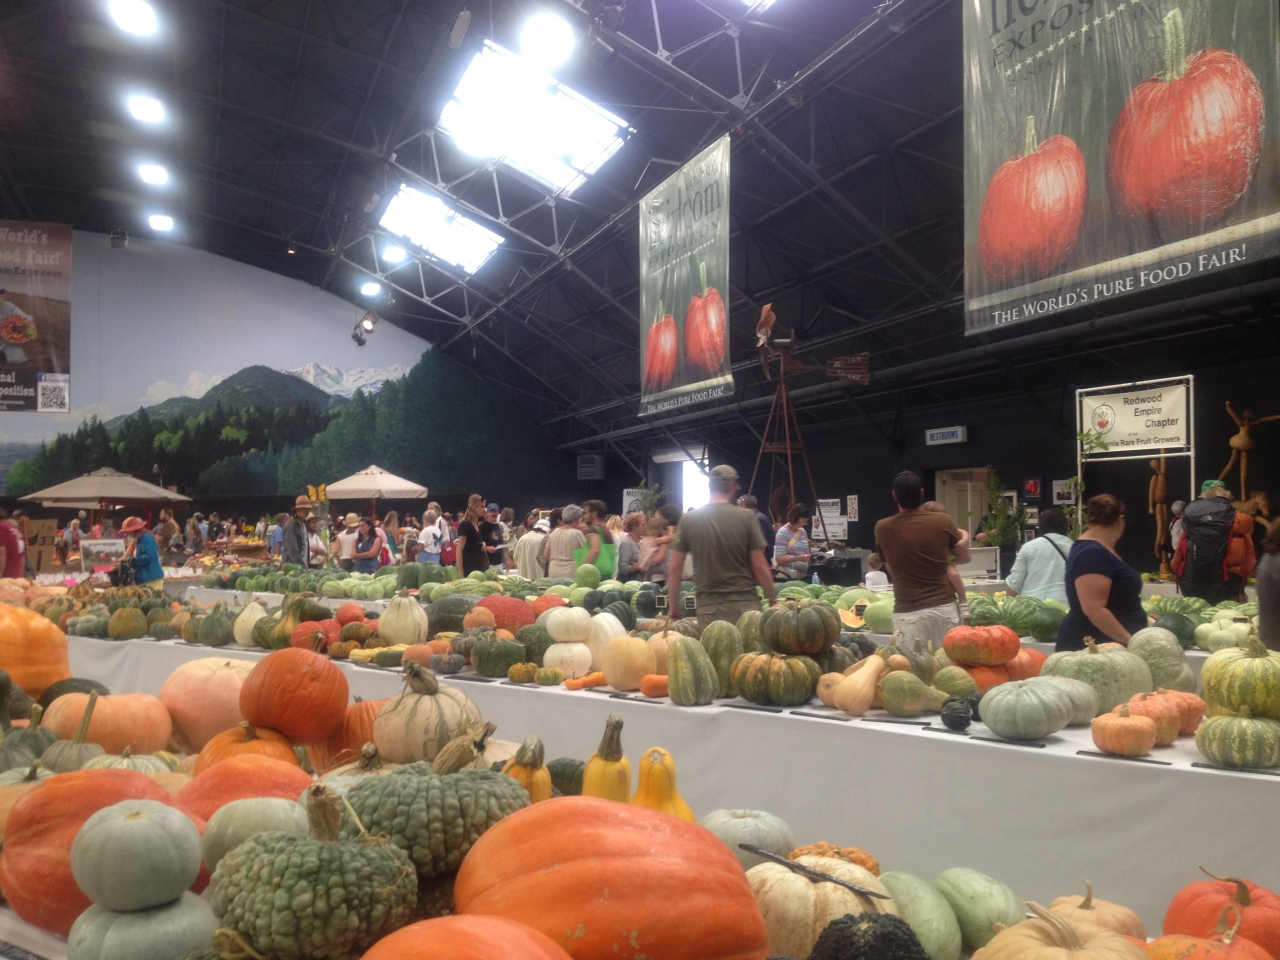 HEIRLOOM HEAVEN: Highlights from the 2013 National Heirloom Expo